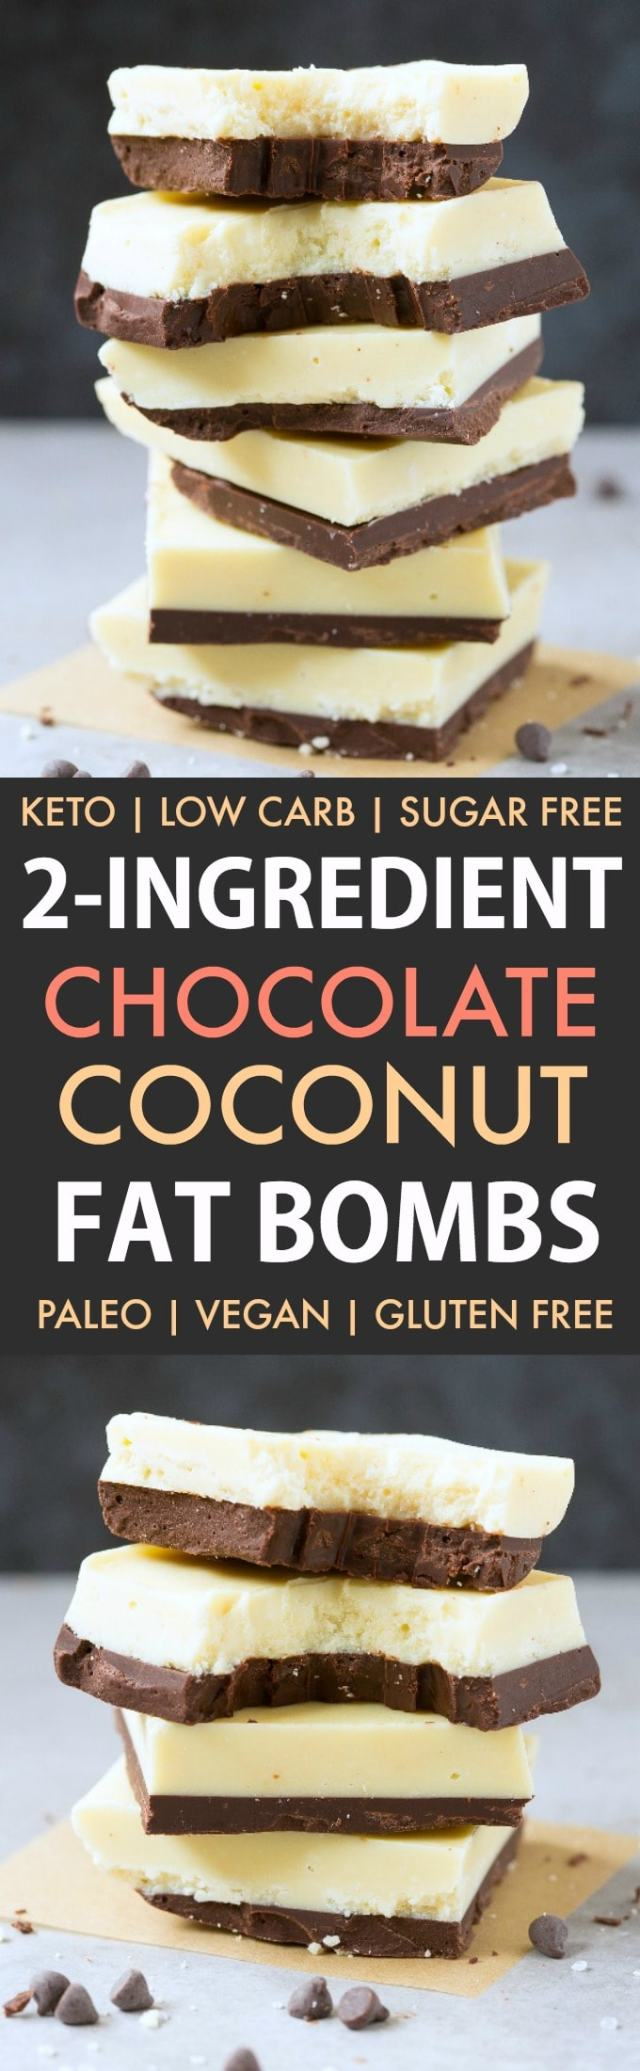 2-Ingredient Low Carb Keto Chocolate Coconut Fat Bombs in a collage